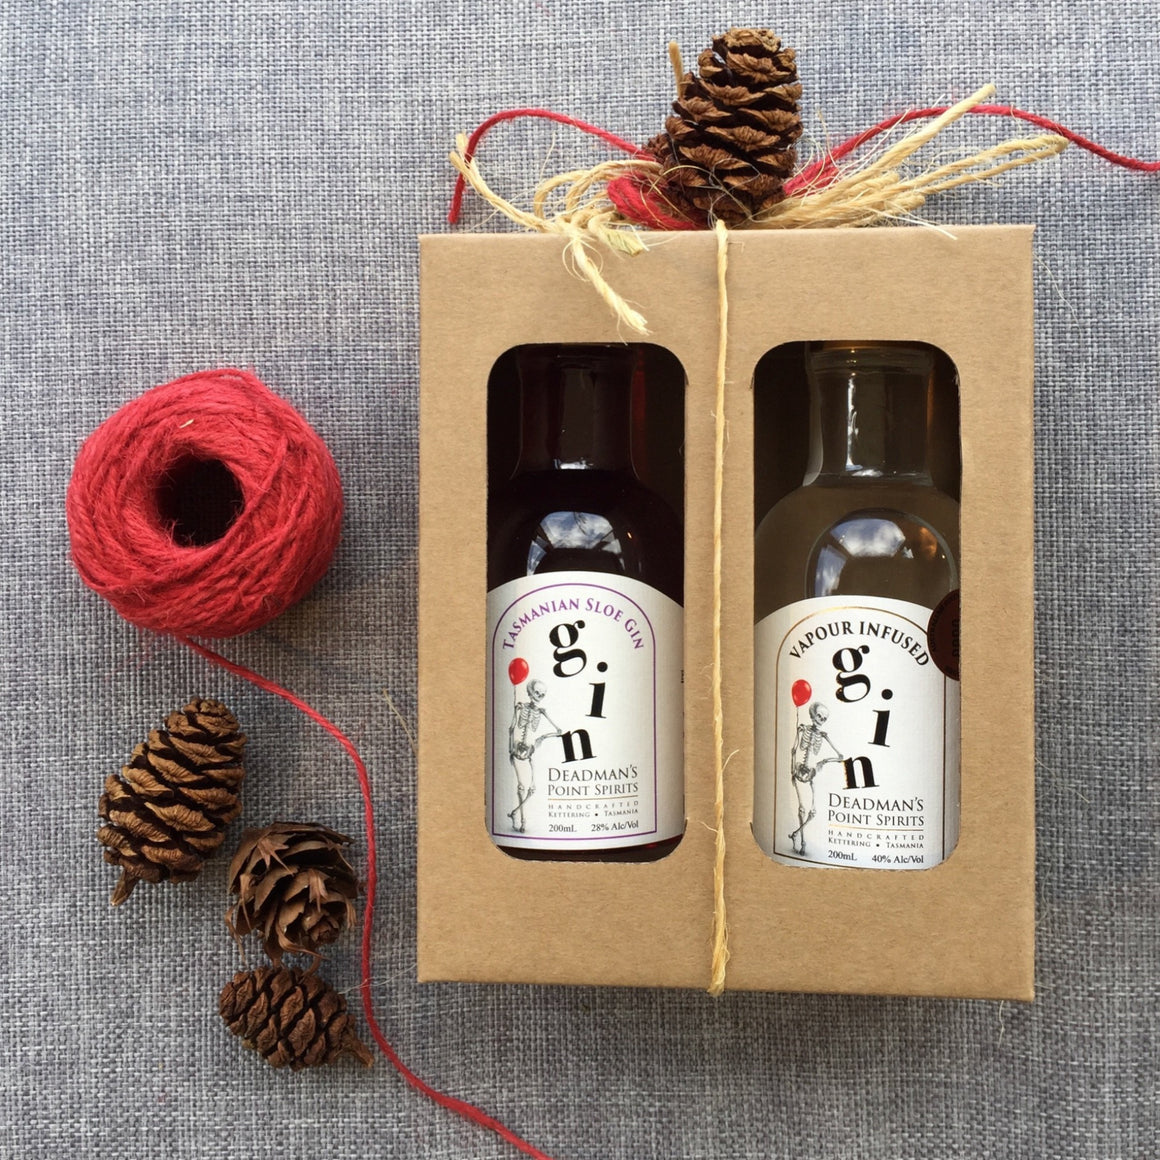 Christmas Sloe & Vapour Infused Gin Twin Pack